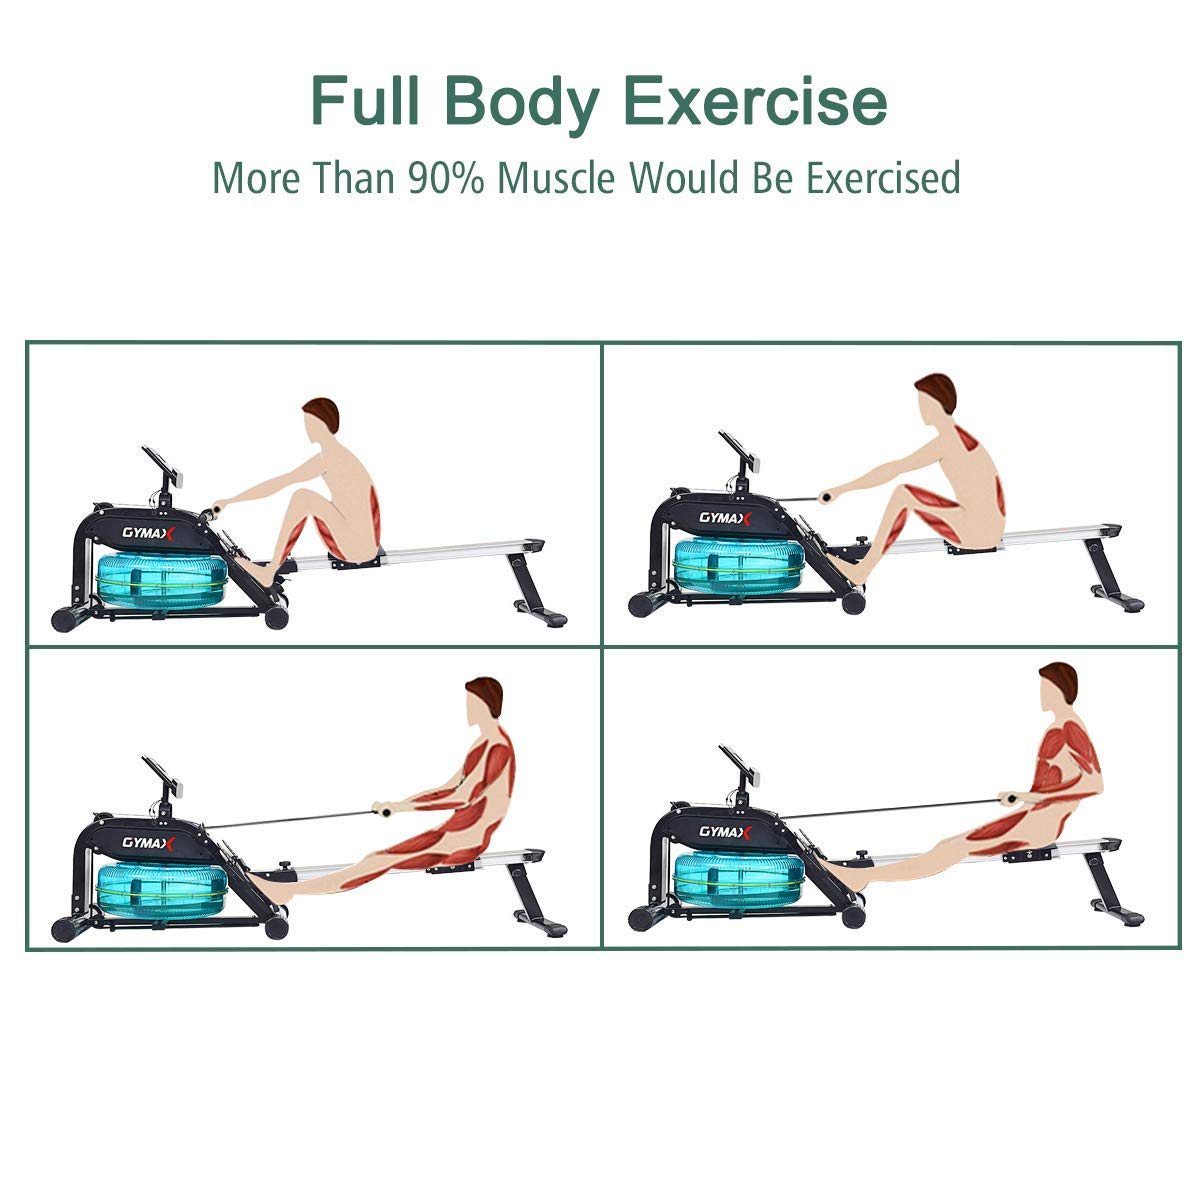 Goplus Water Rowing Machine with Heart Rate Sensor Indoor Water Rower with Adjustable Resistance Water Wheel LCD Monitor & Full Body Exercise for Home Use by Goplus (Image #9)